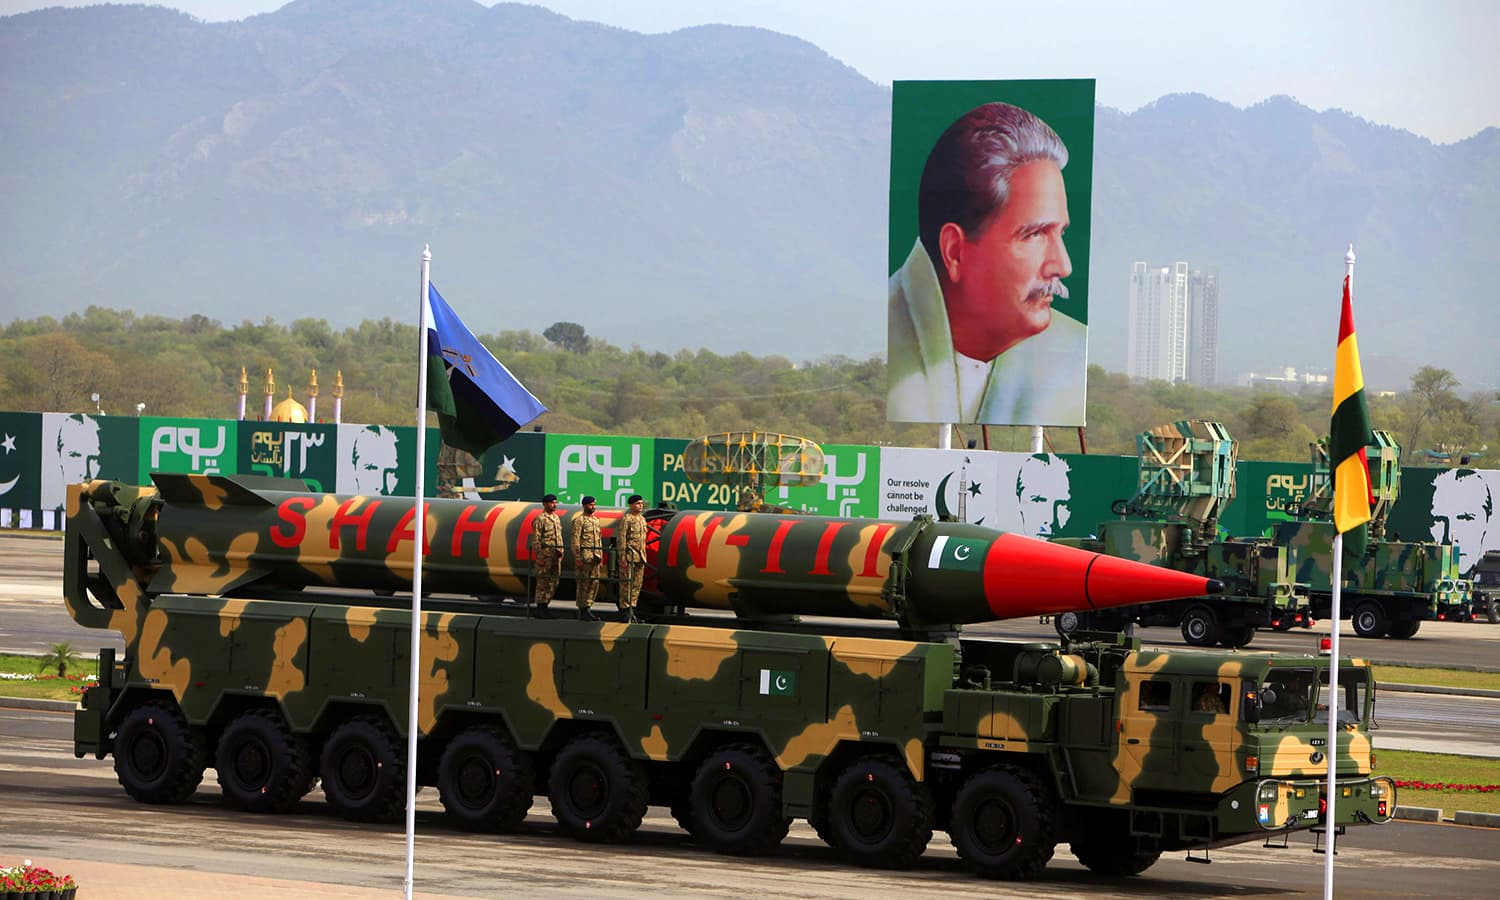 The Shaheen-III missile is displayed during the Pakistan Day parade. ─ Reuters